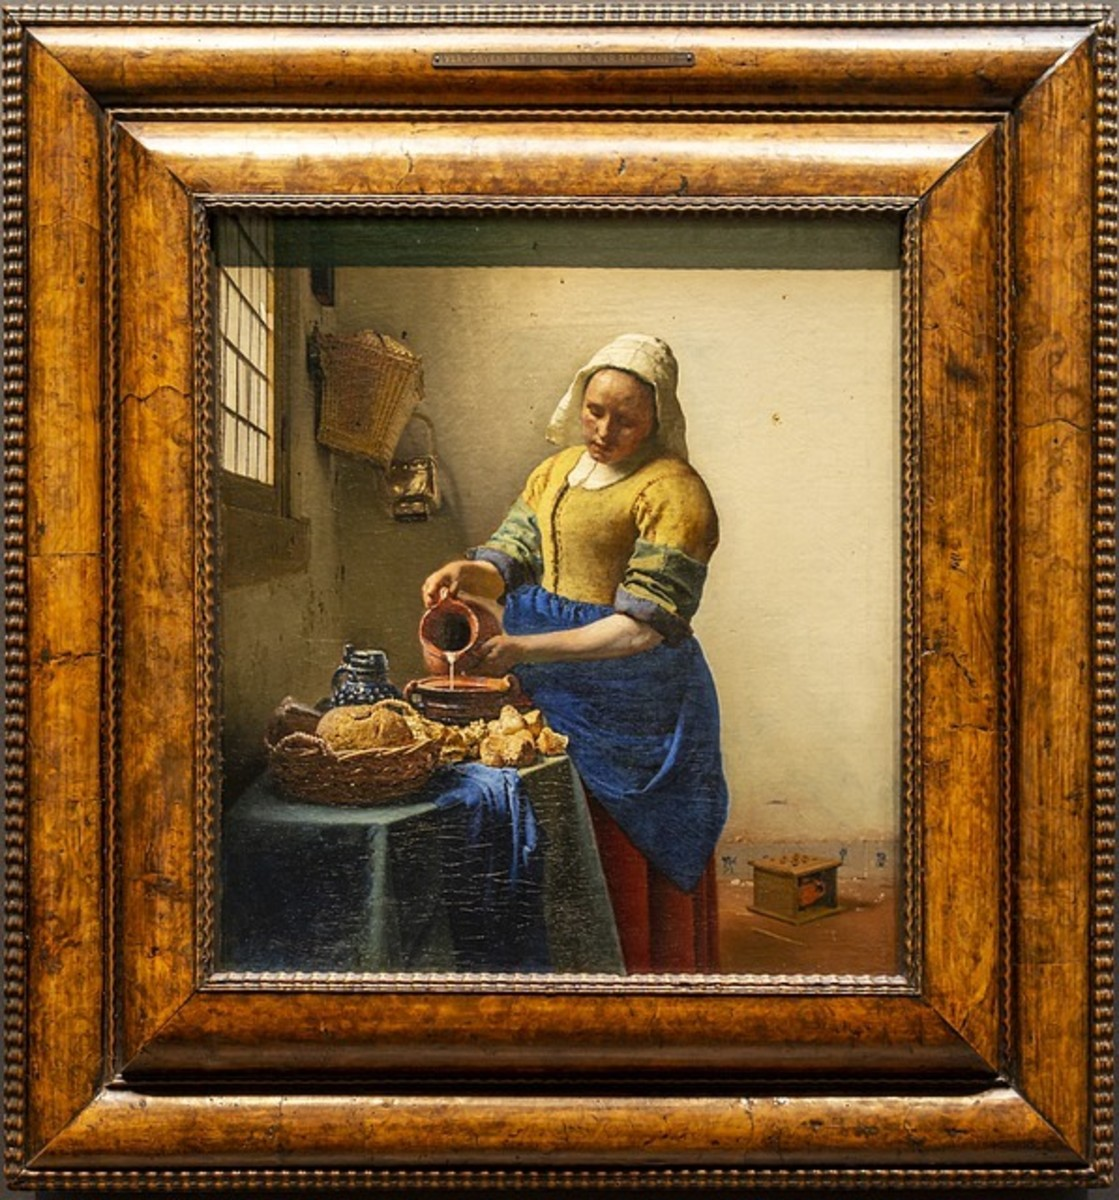 Vermeer used ground Lapis Lazuli as a pigment in his masterpieces.